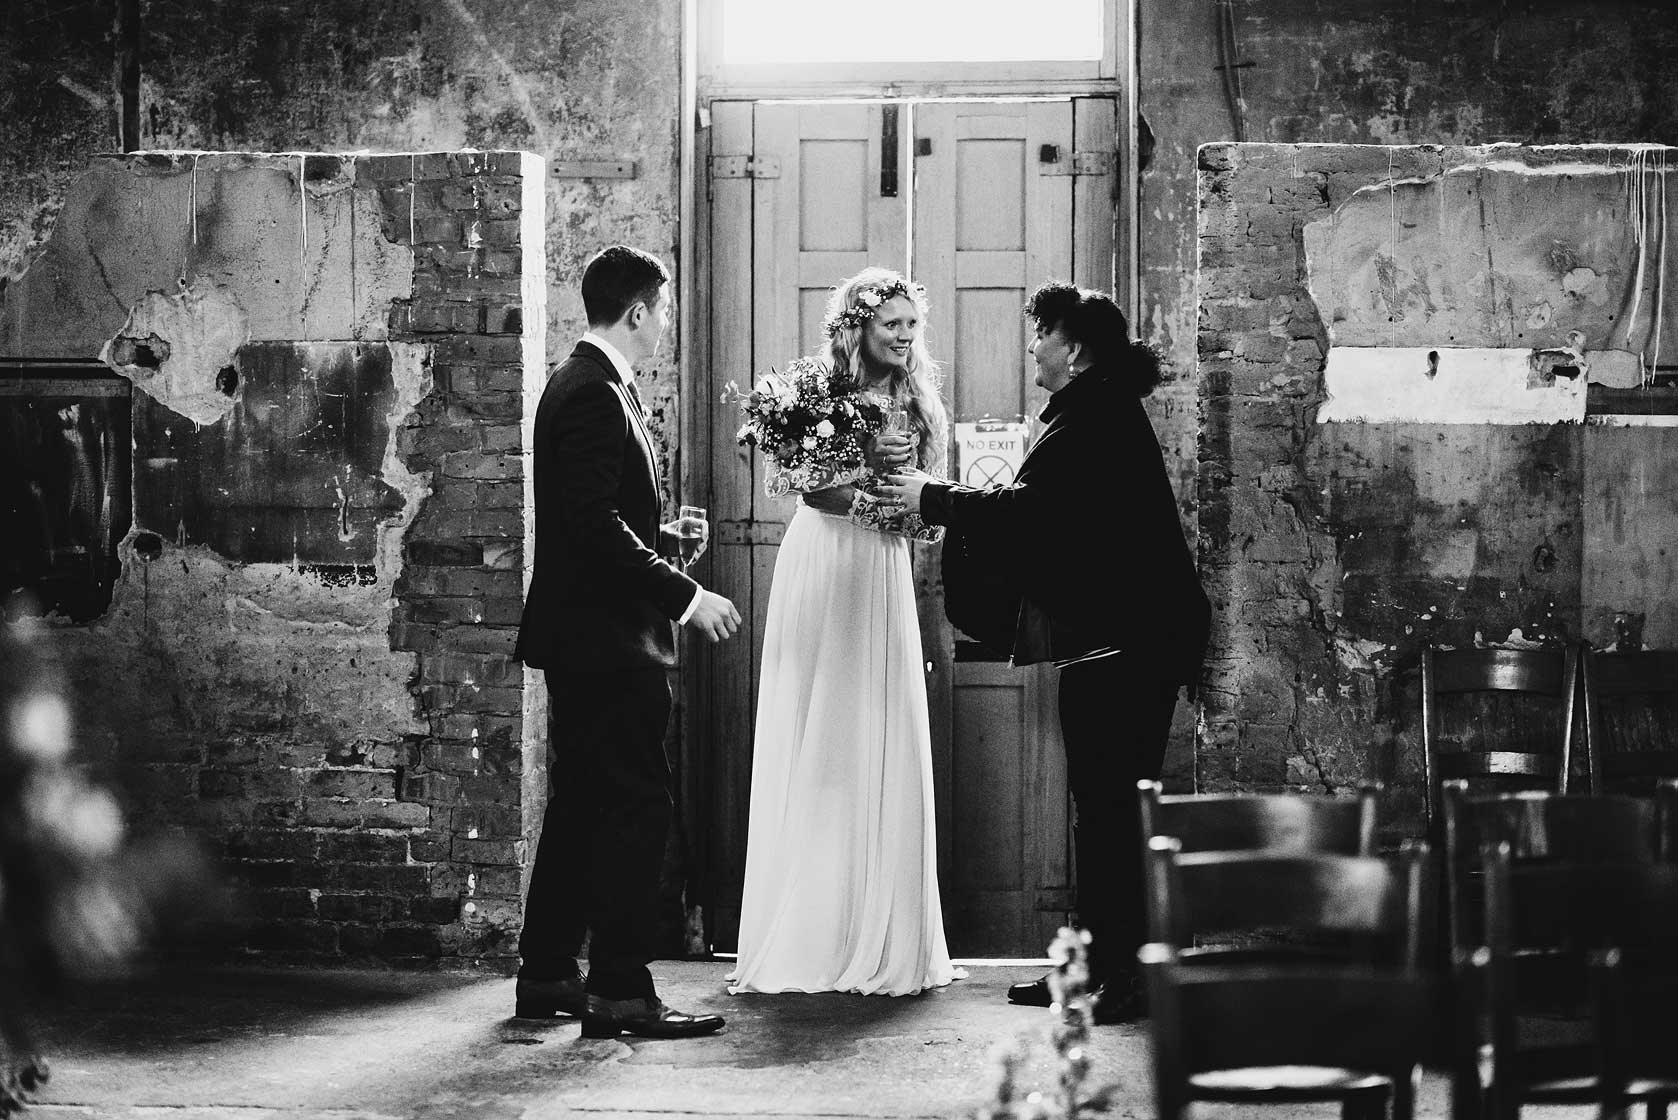 Reportage Wedding Photography at The Anthologist